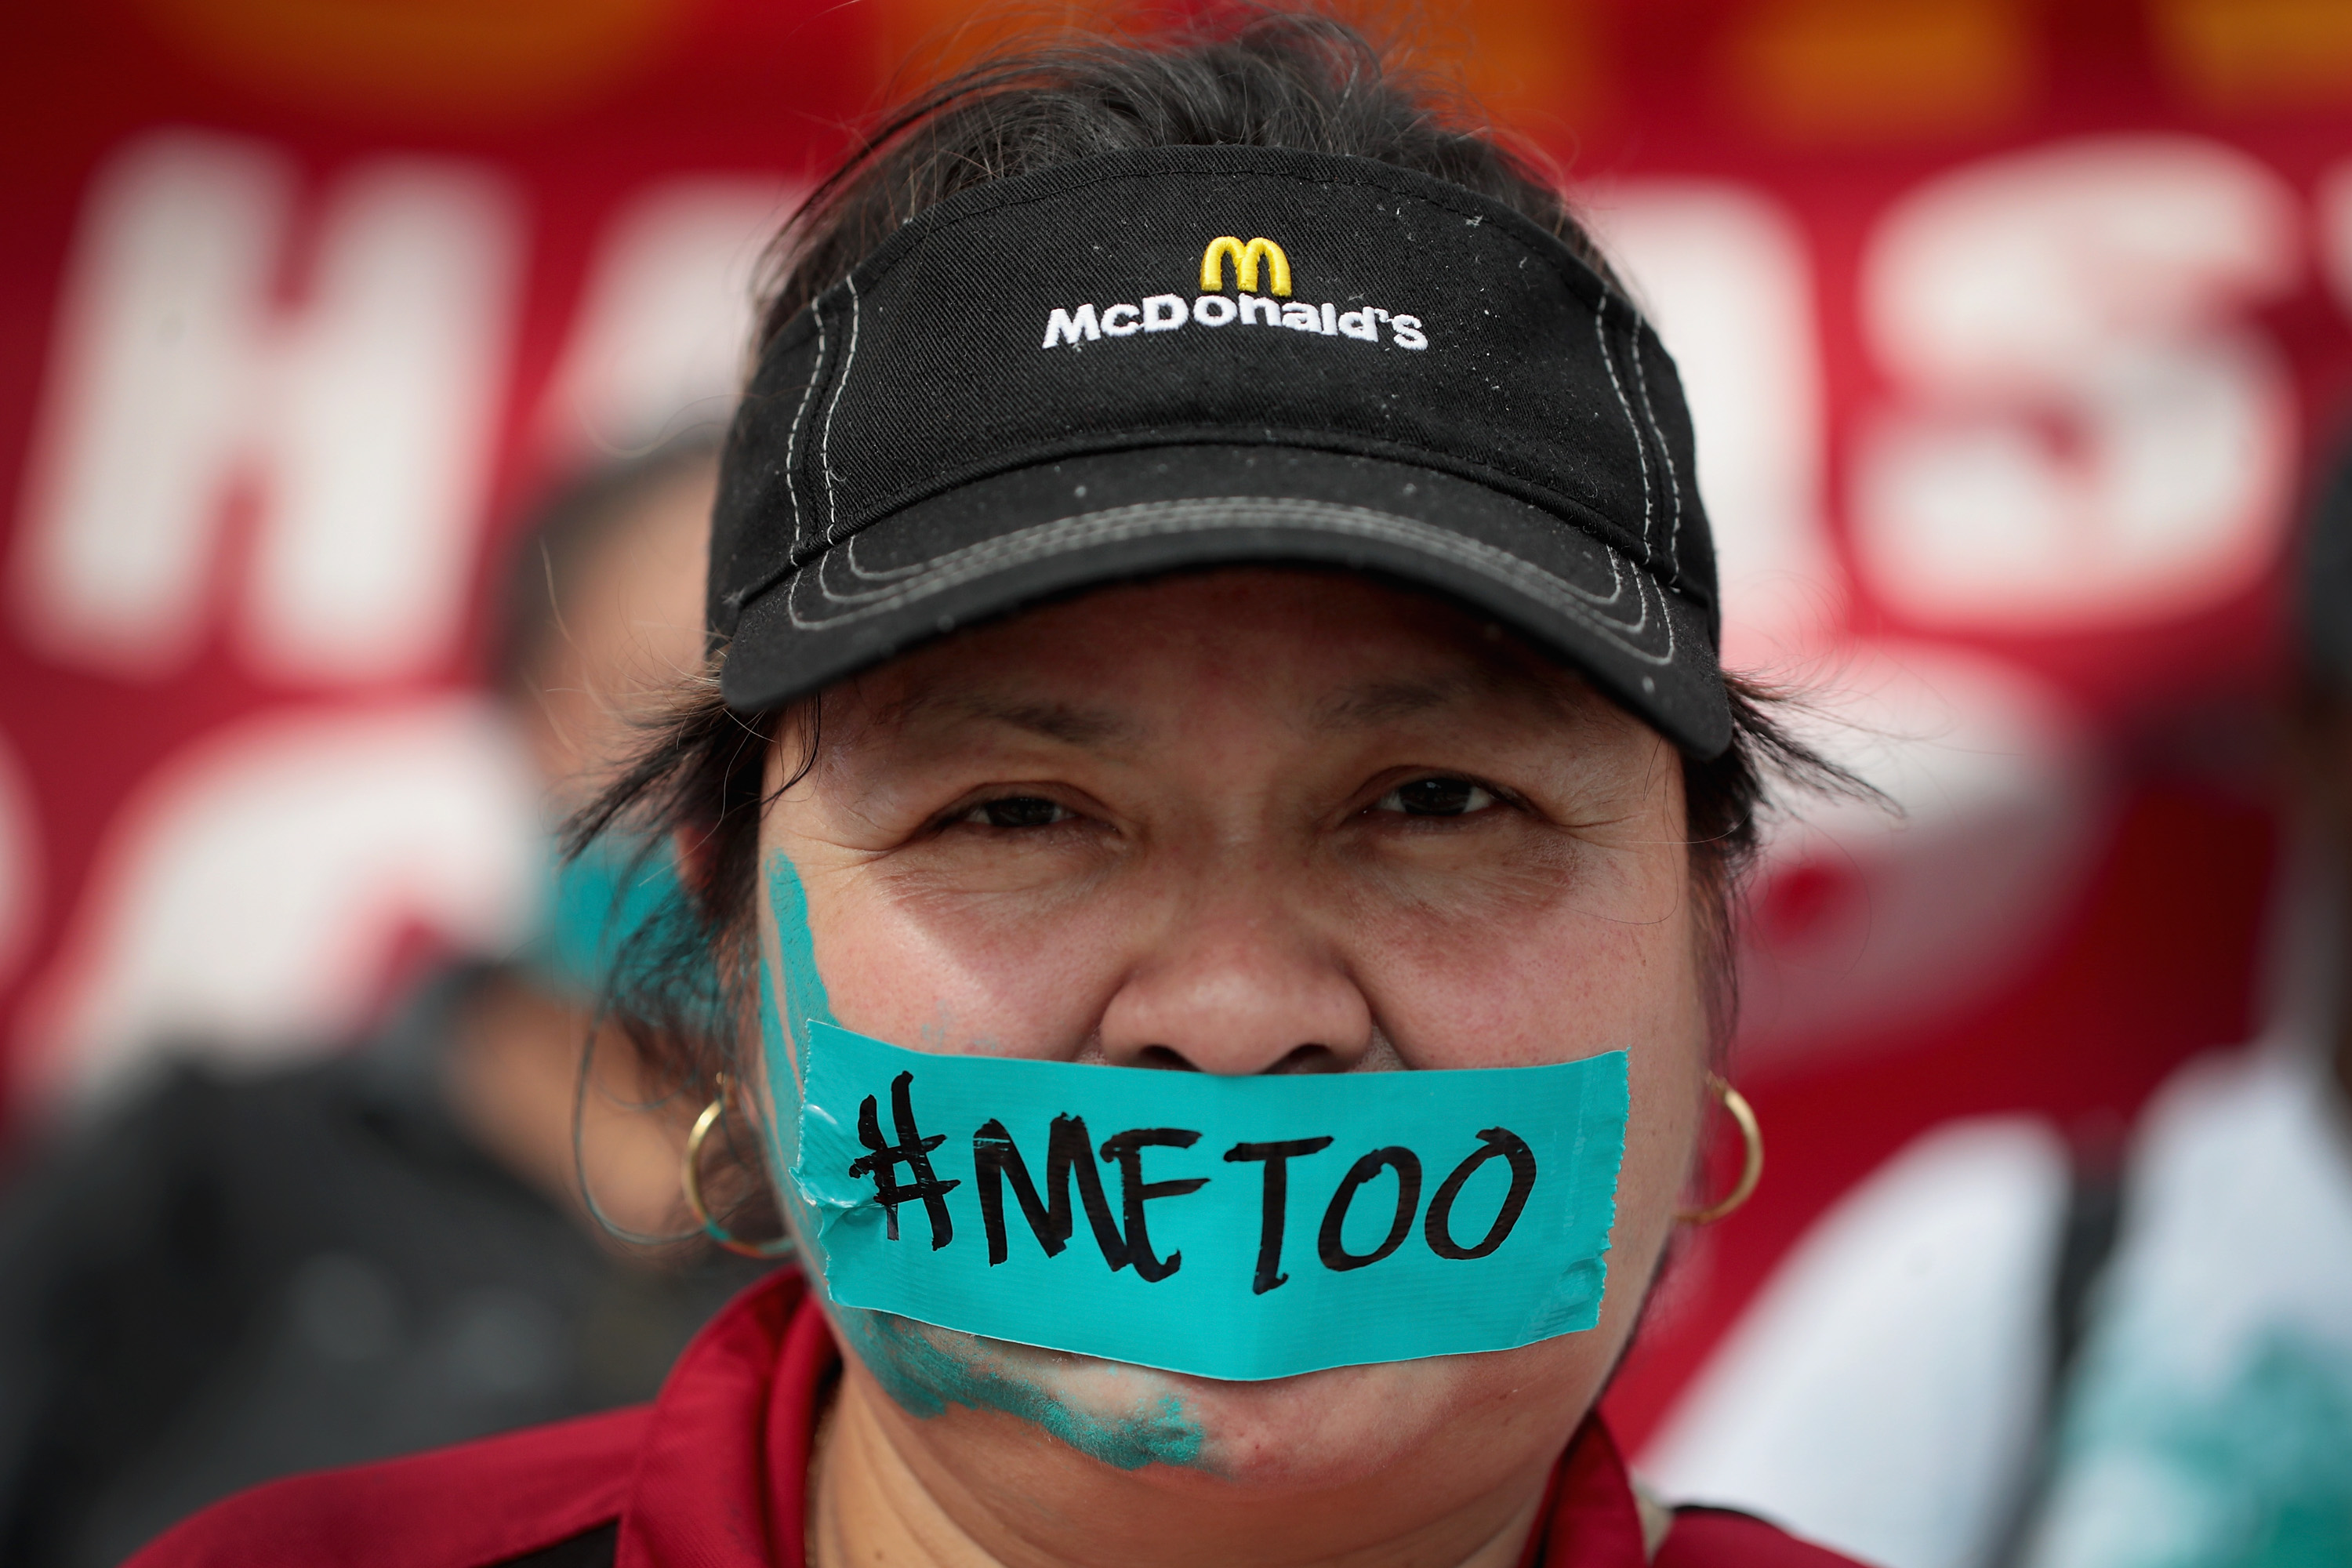 Chicago Area Fast Food Worker Activists Organize National Strike To Combat Sexual Harassment